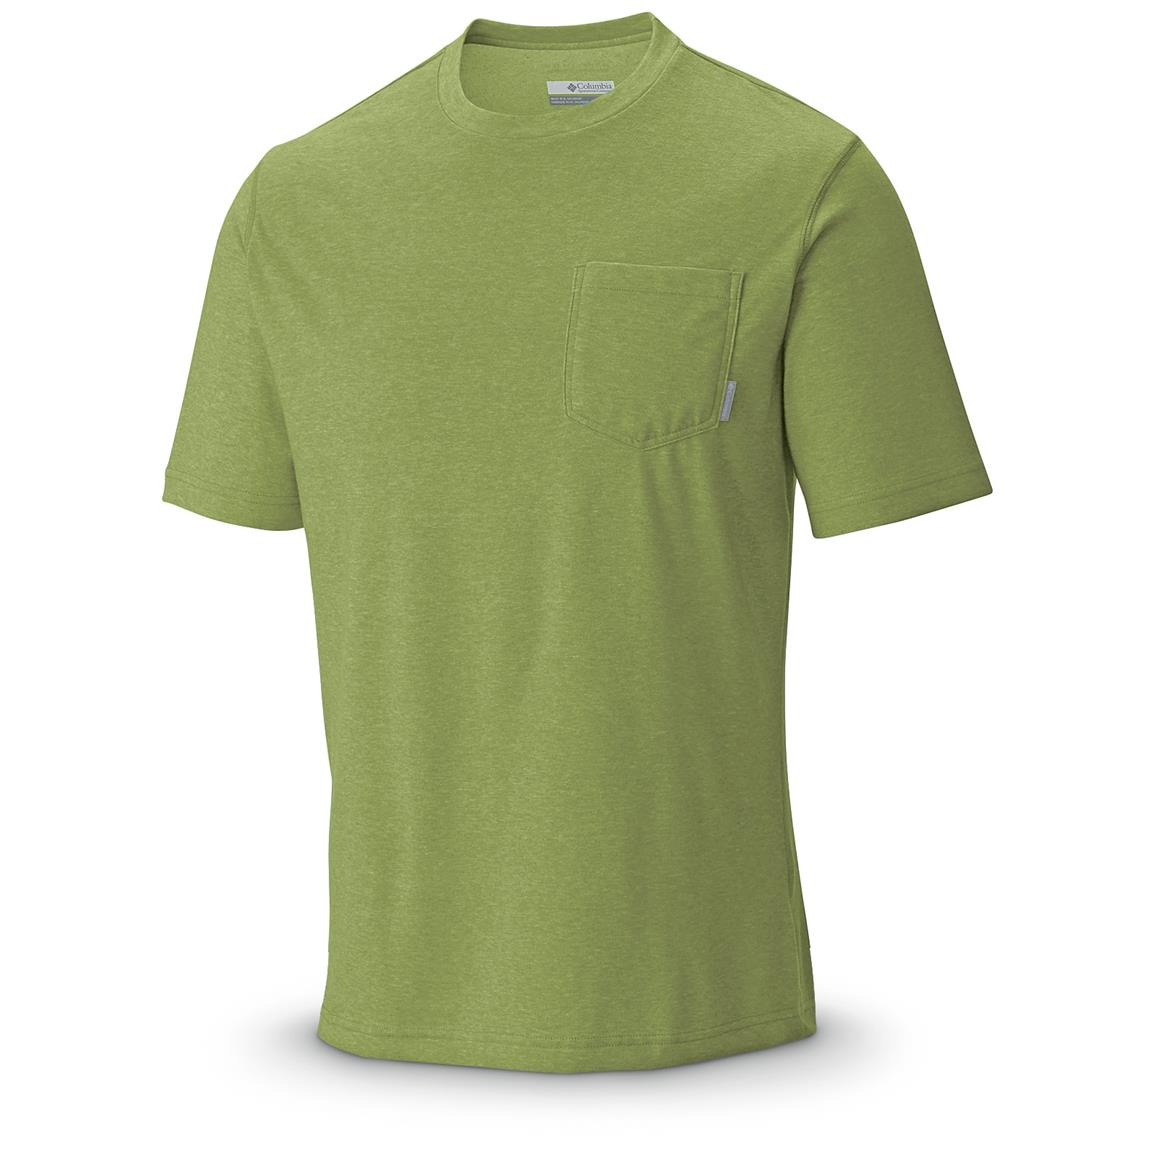 Columbia Men's Thistletown Park Pocket T-Shirt, Nappa Green Heather